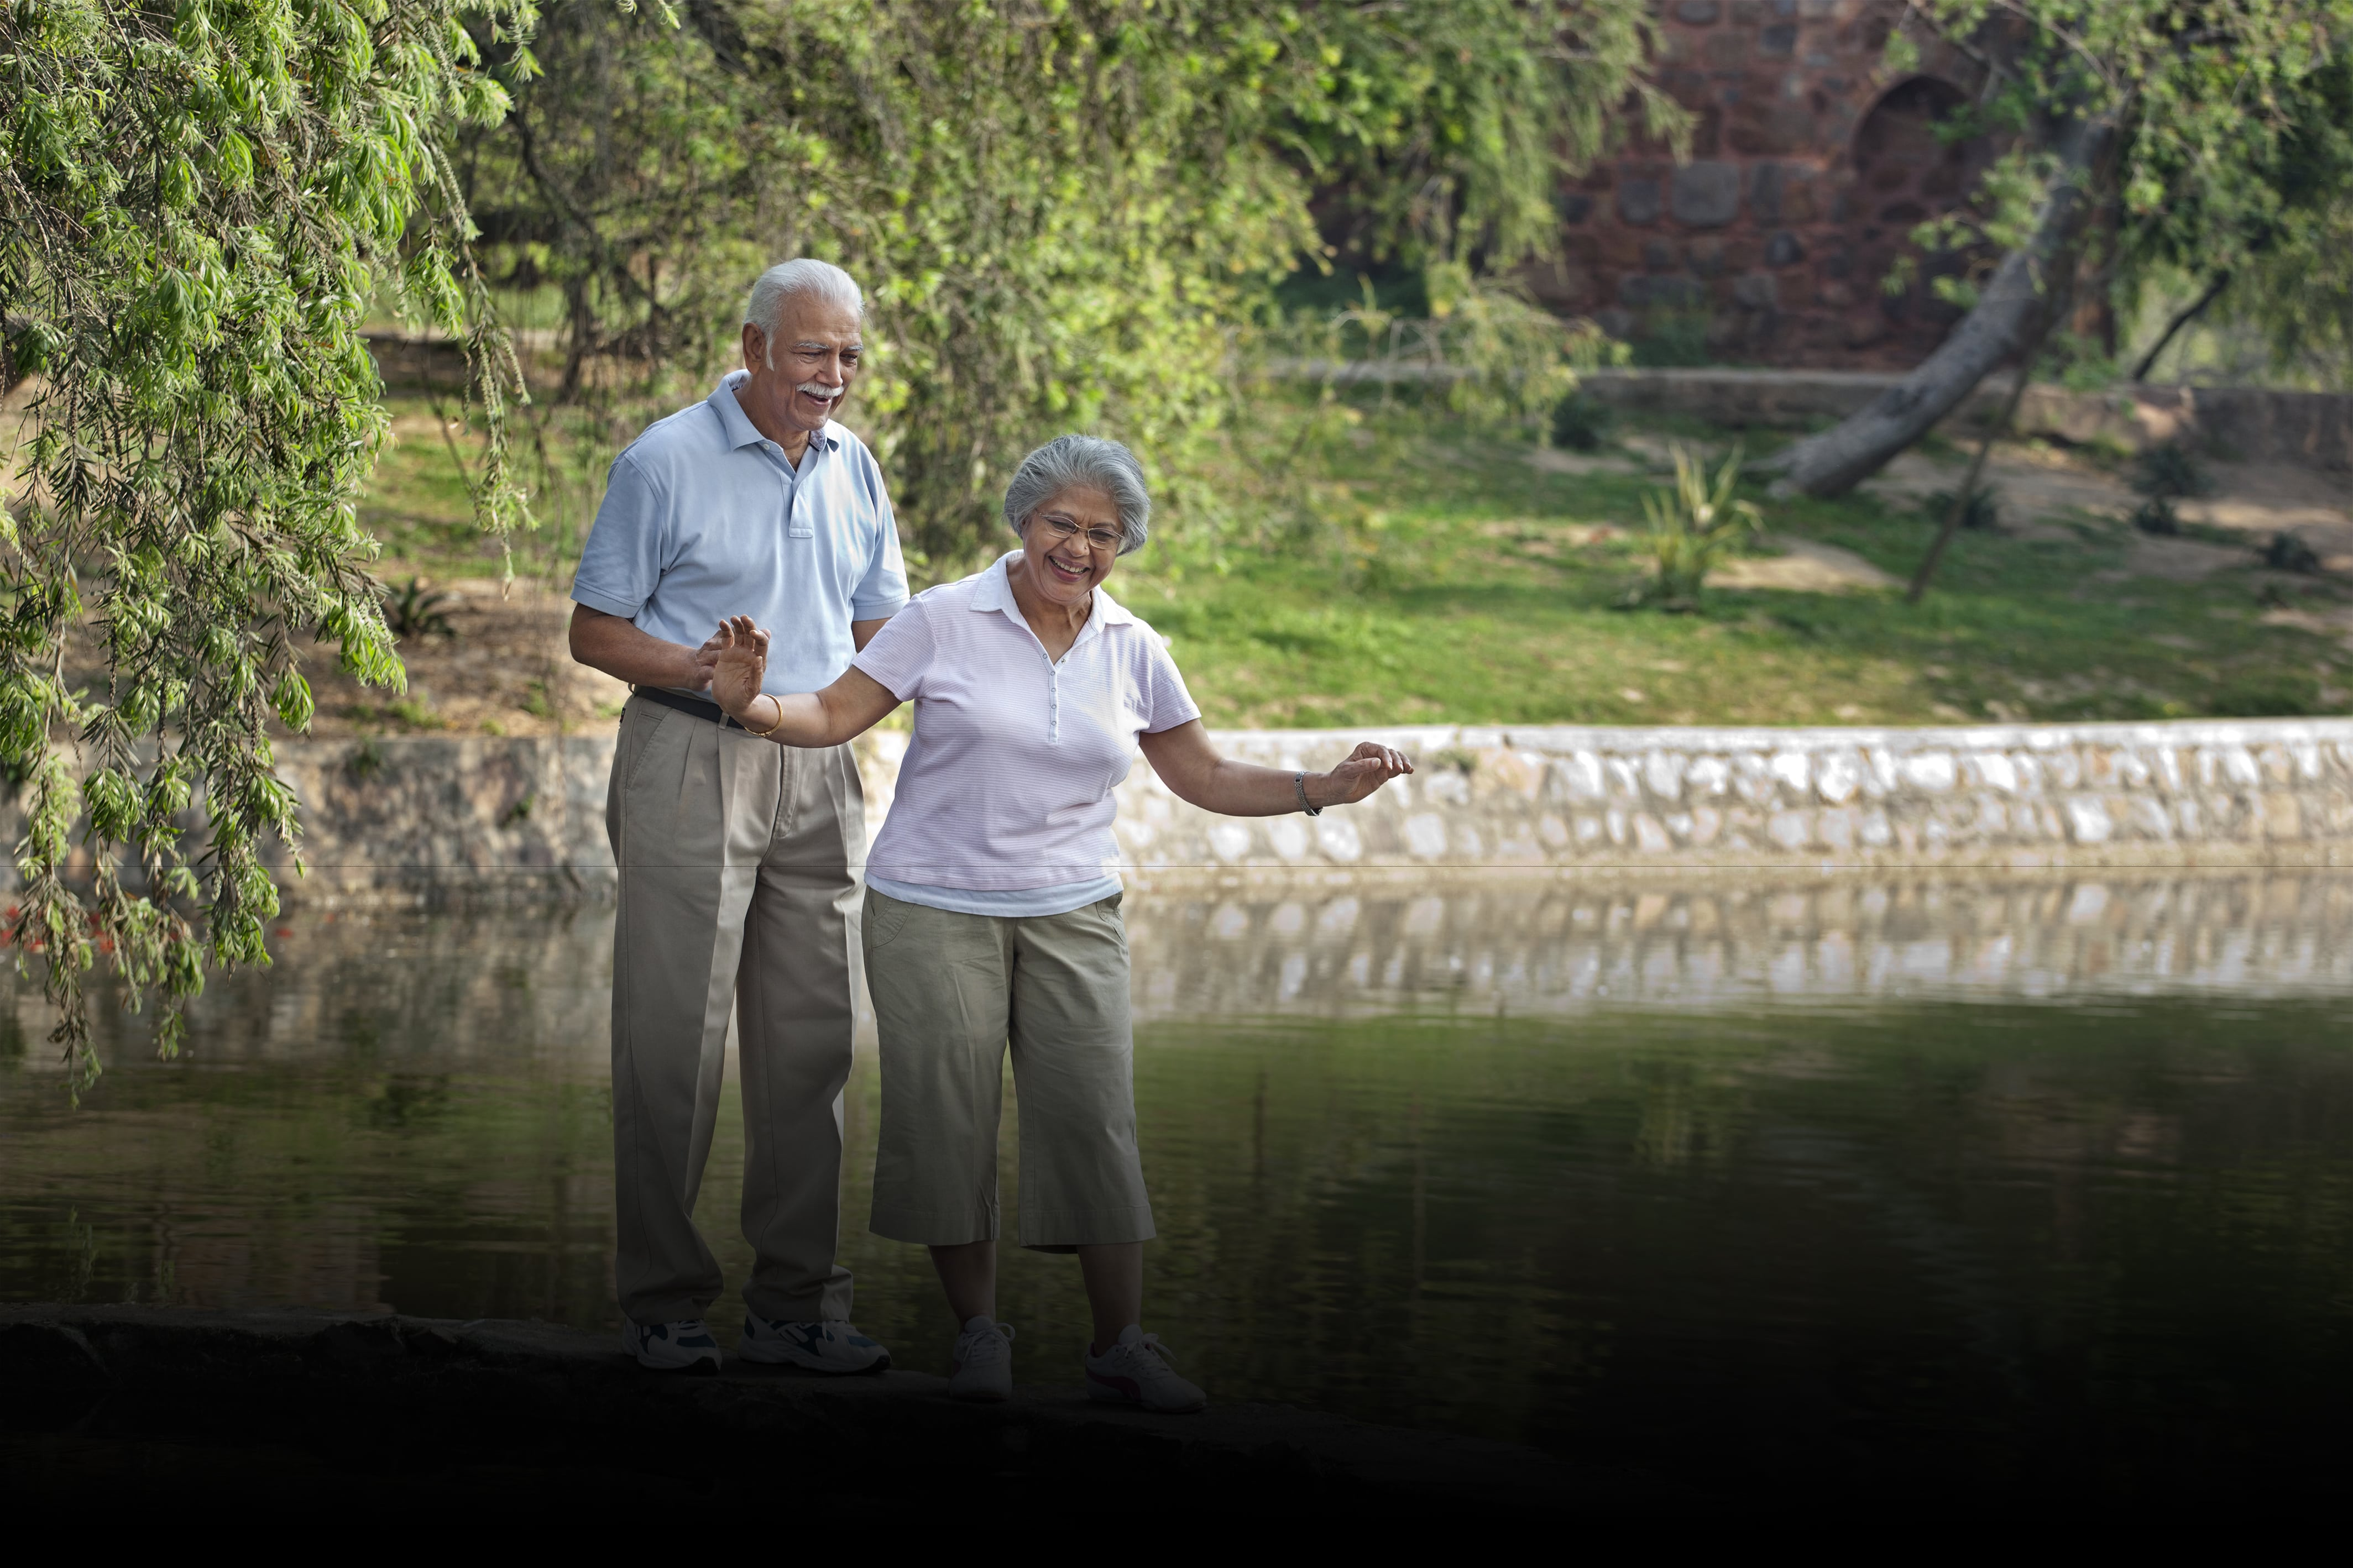 10 Things to Have a Happy Retirement